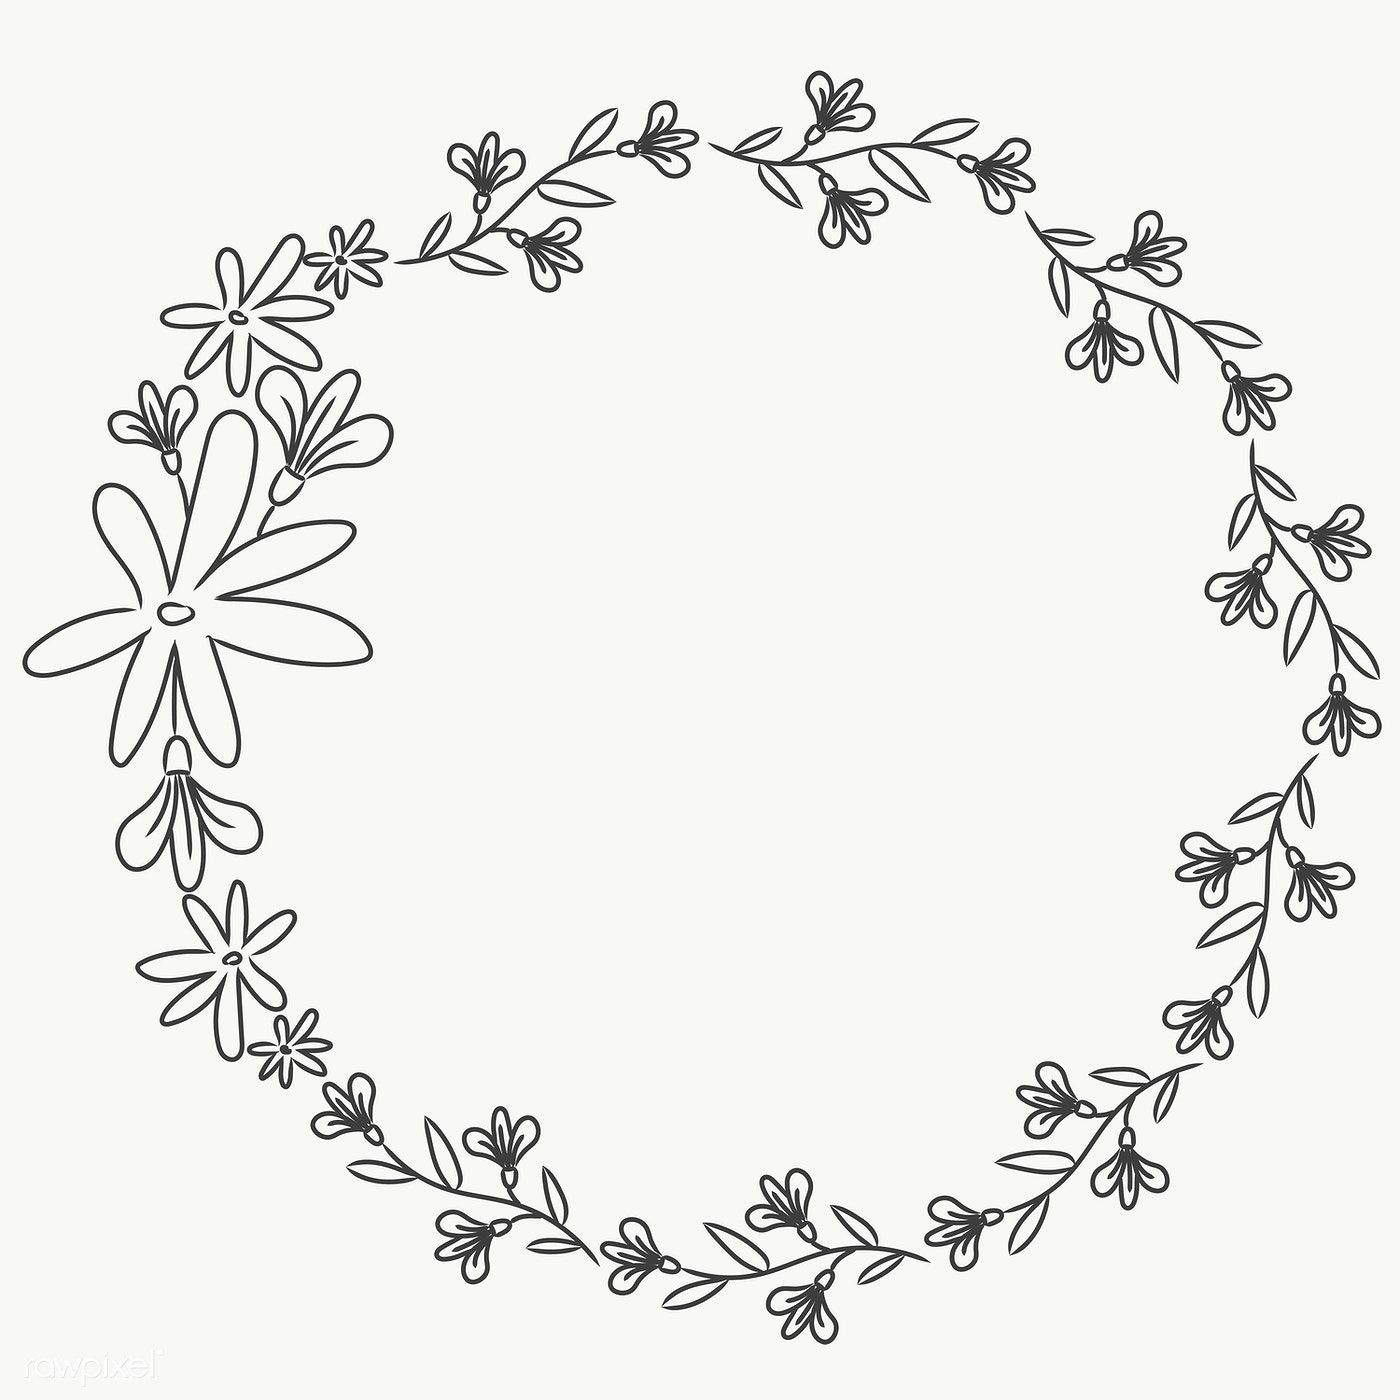 Cute Doodle Floral Wreath Transparent Png Free Image By Rawpixel Com Pimmy Floral Wreath Drawing Flower Wreath Illustration Cute Doodles